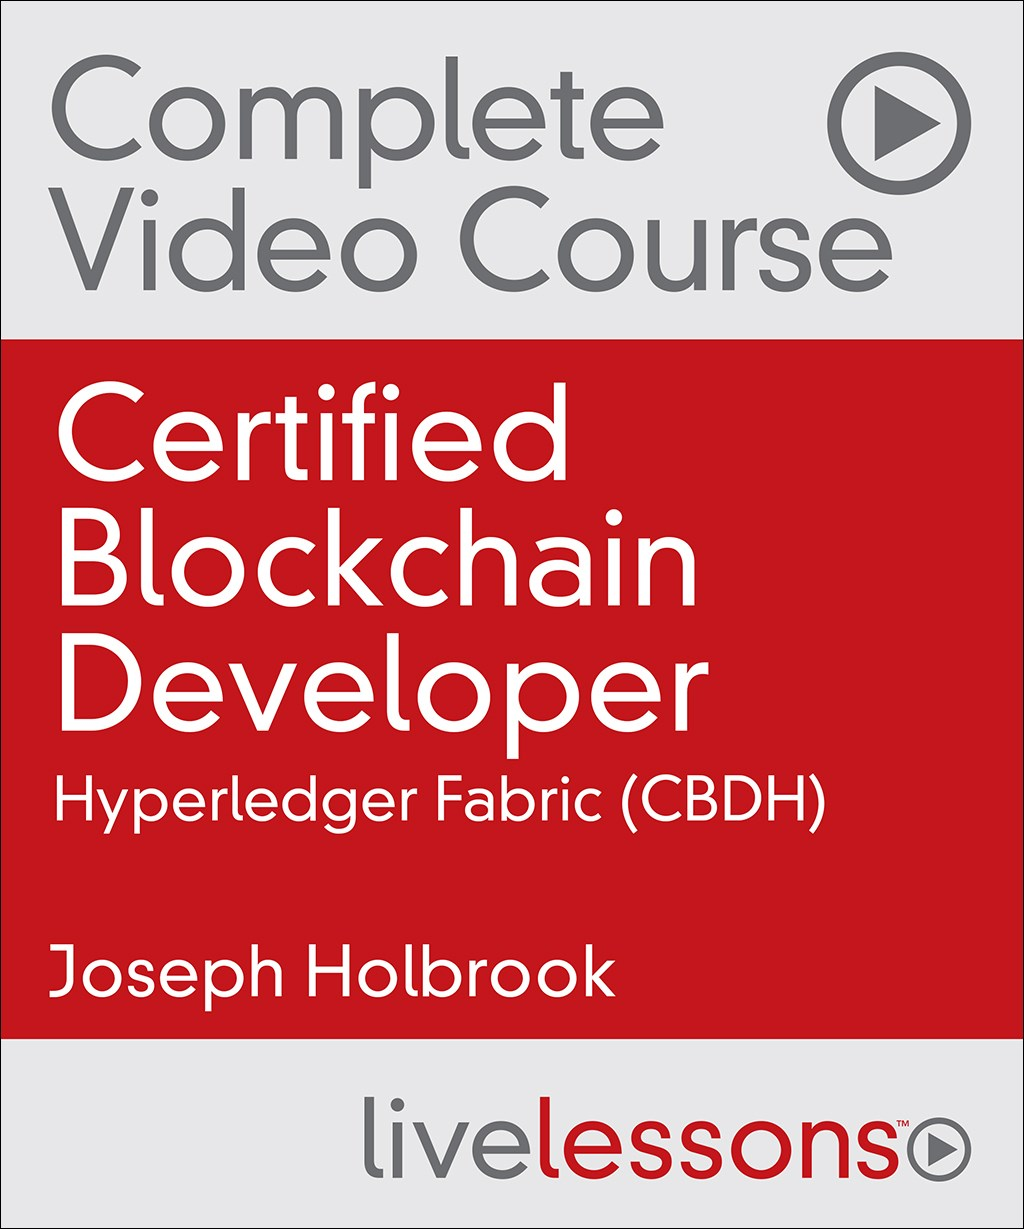 CertCertified Blockchain Developer - Hyperledger Fabric Complete Video Course